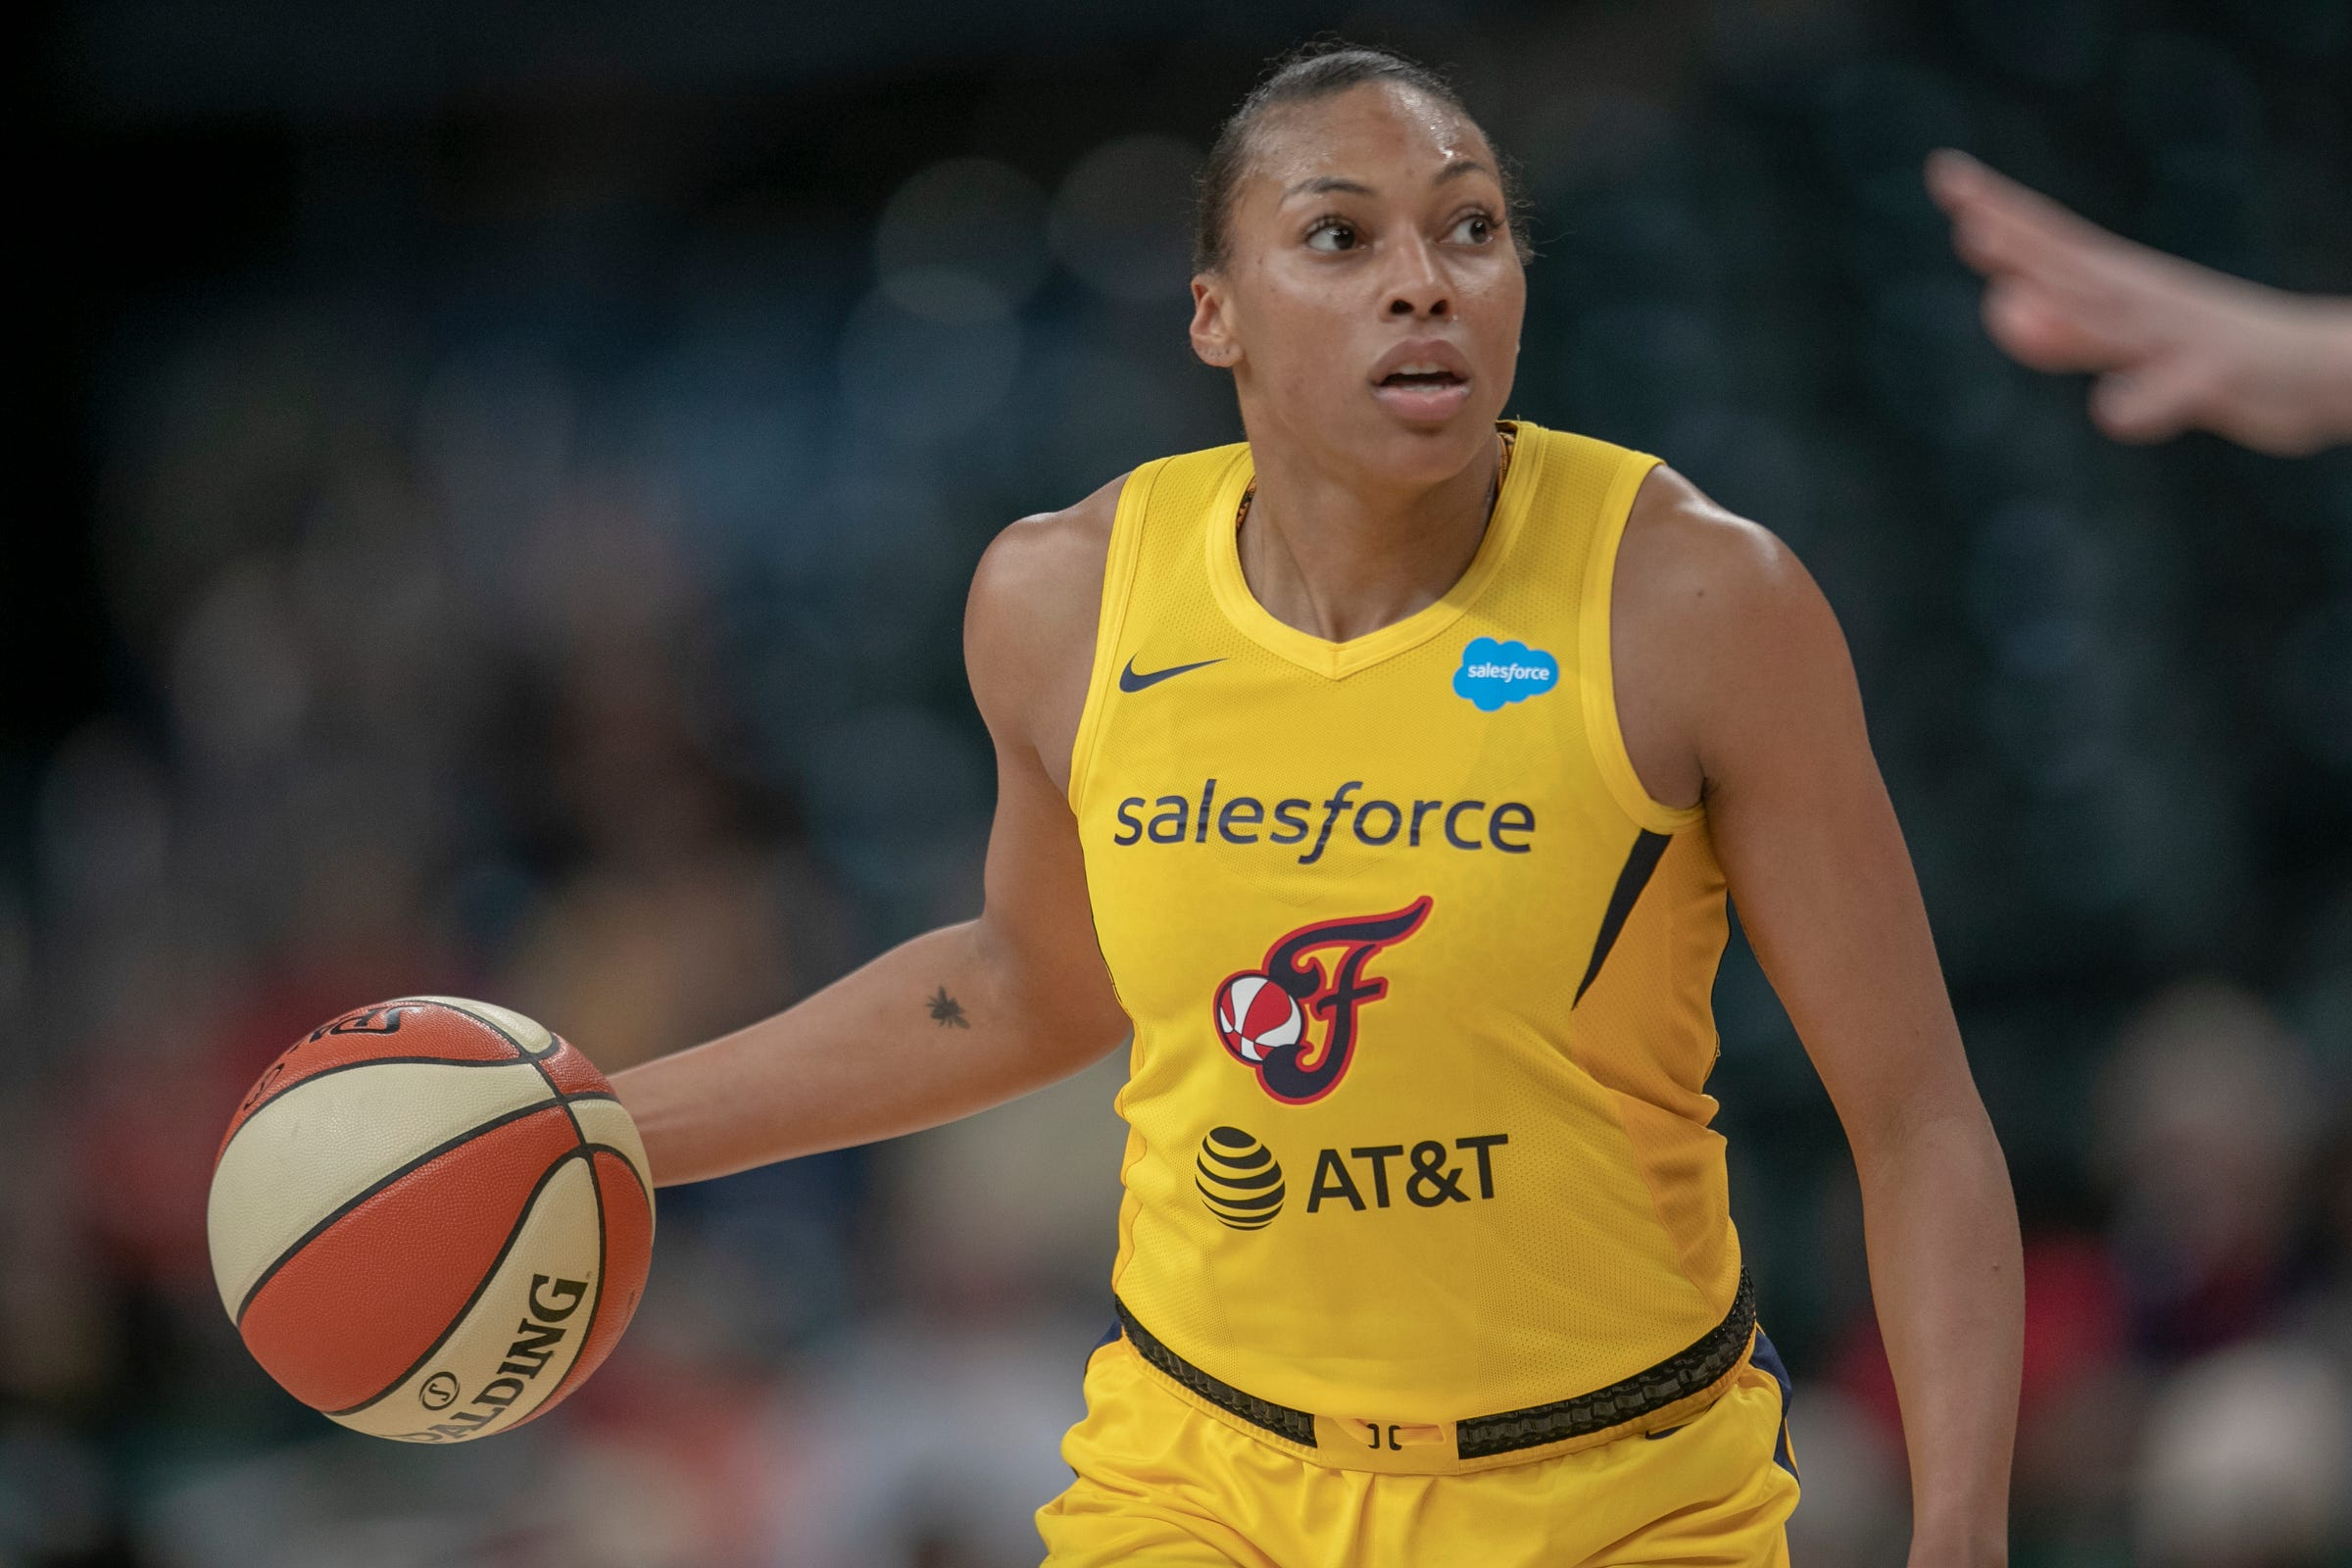 Betnijah Laney of Indiana, during game action, Chicago Sky at Indiana Fever, WNBA preseason, Bankers Life Fieldhouse, Indianapoolis, Wednesday, May 15, 2019. Indiana won 76-65.